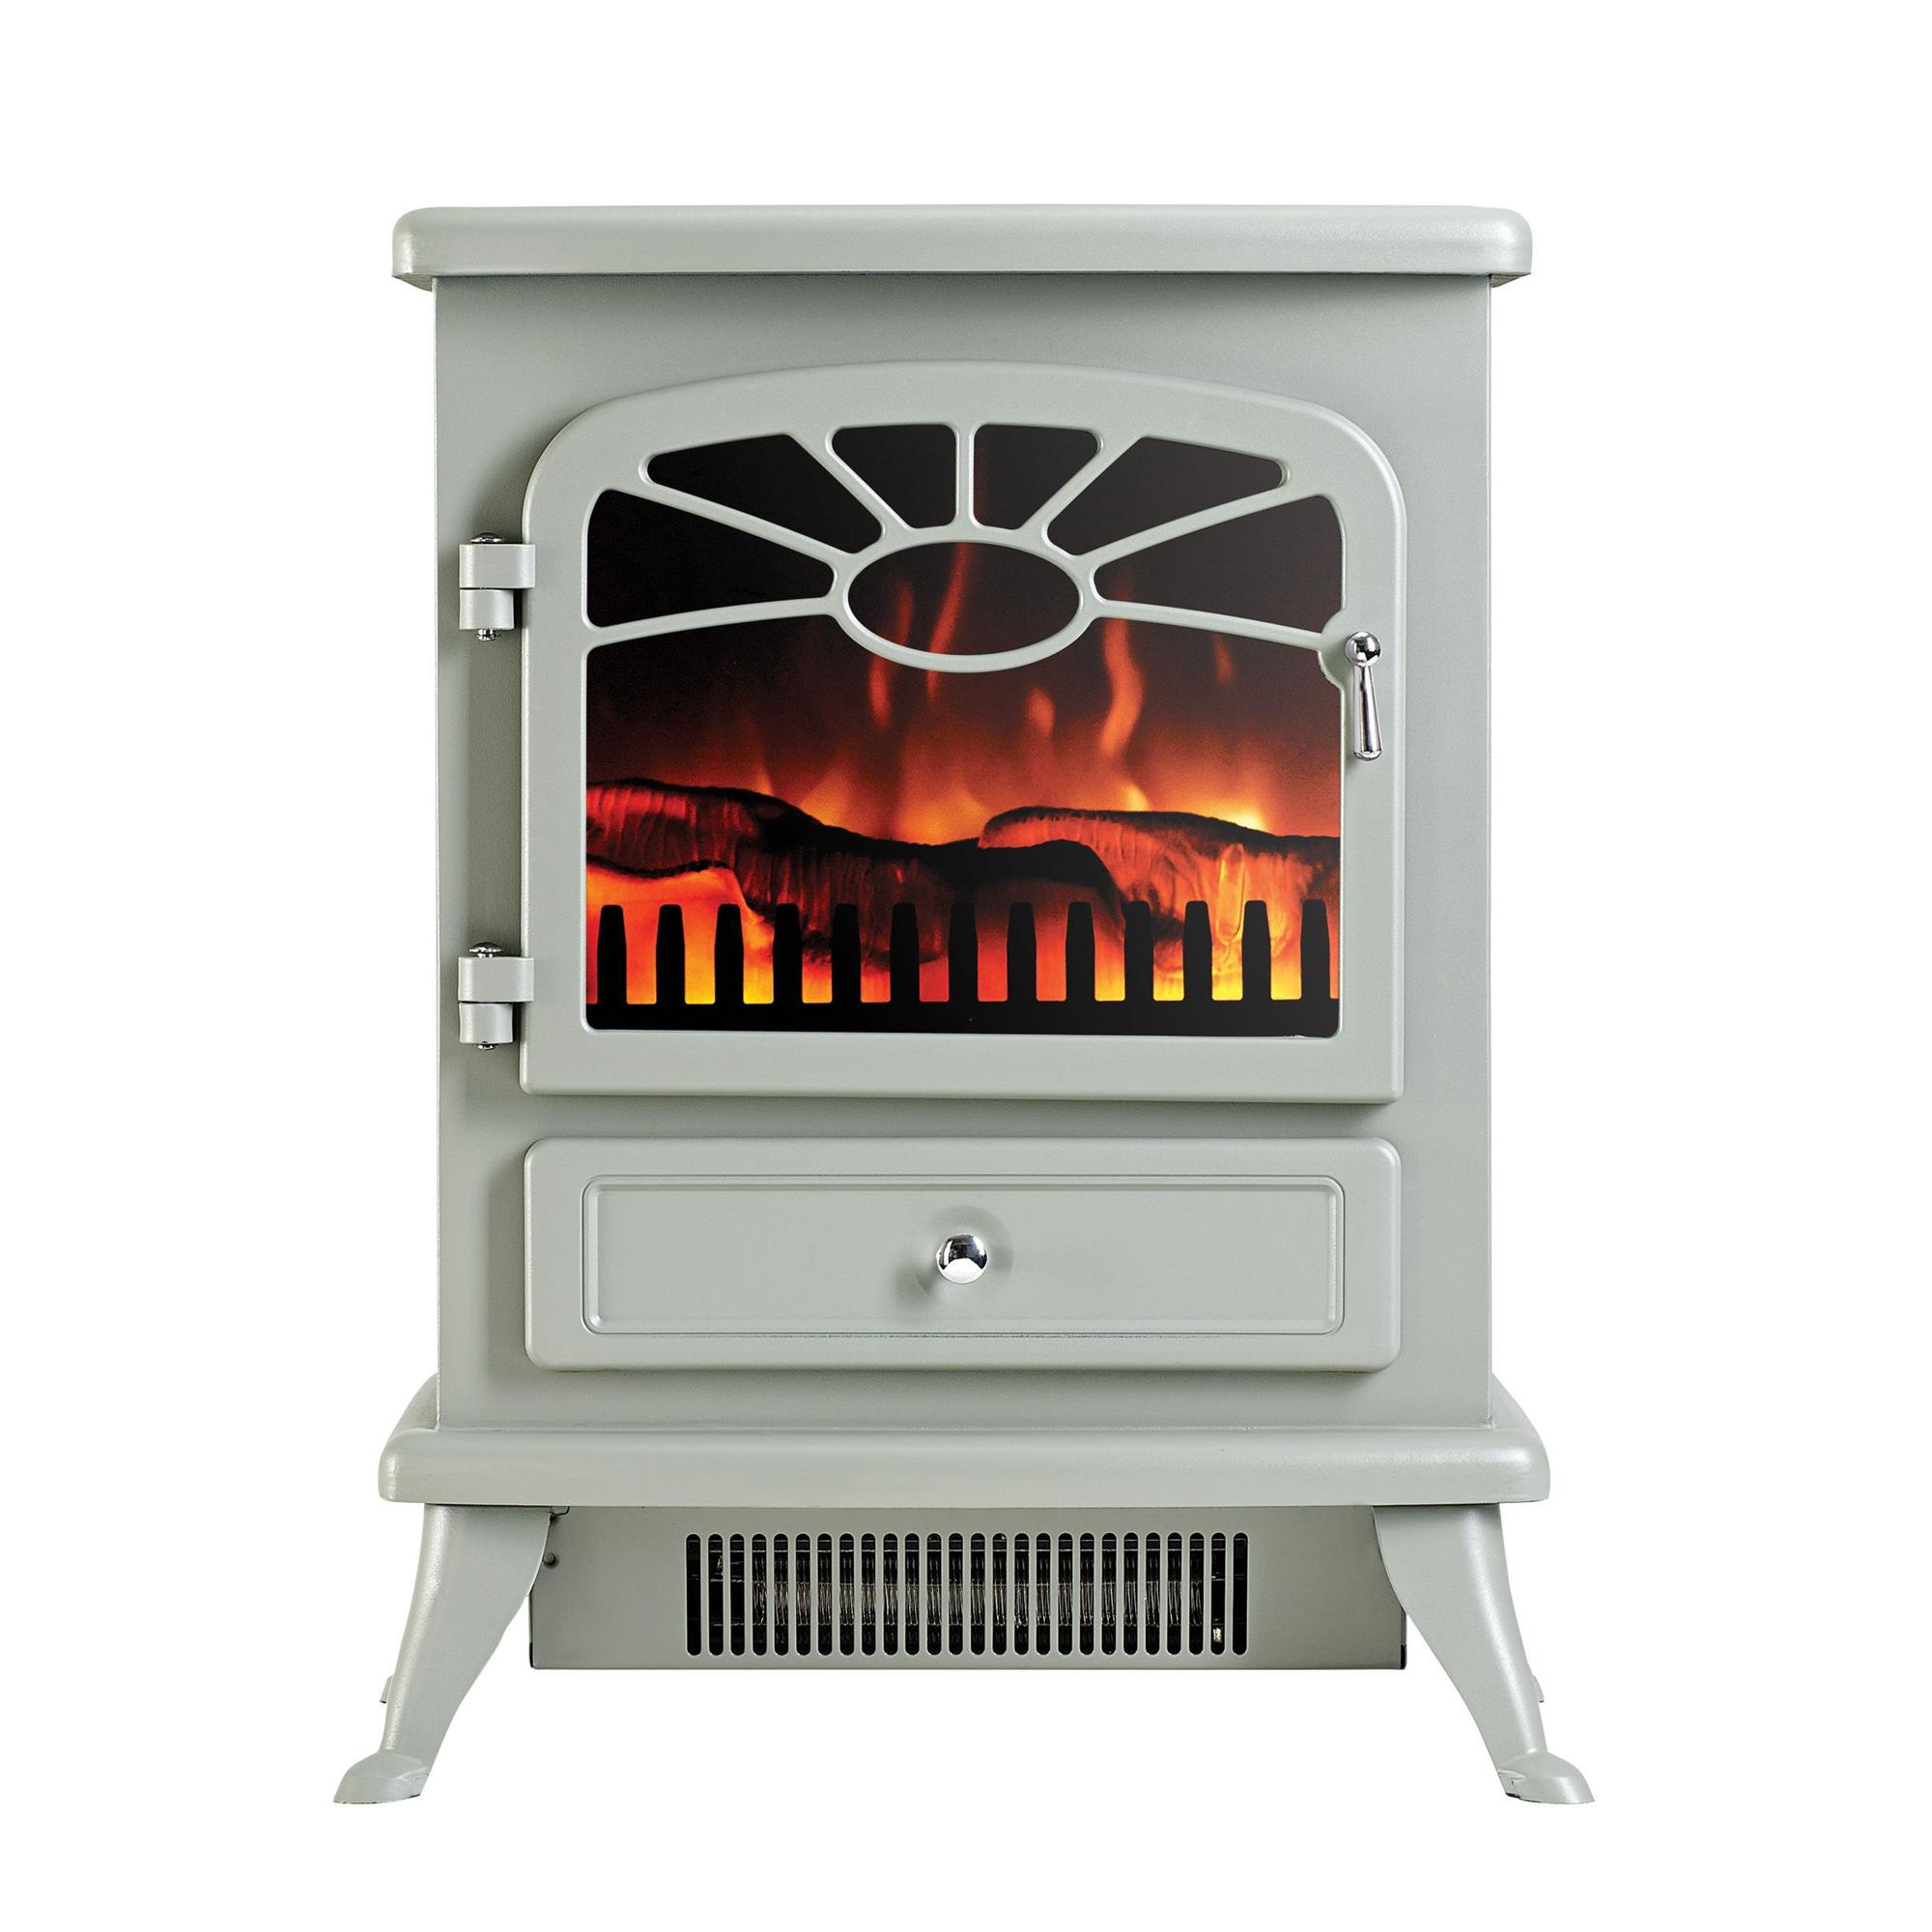 Focal Point Electric Fire: Focal Point ES2000 Grey & Matt Electric Fire Stove